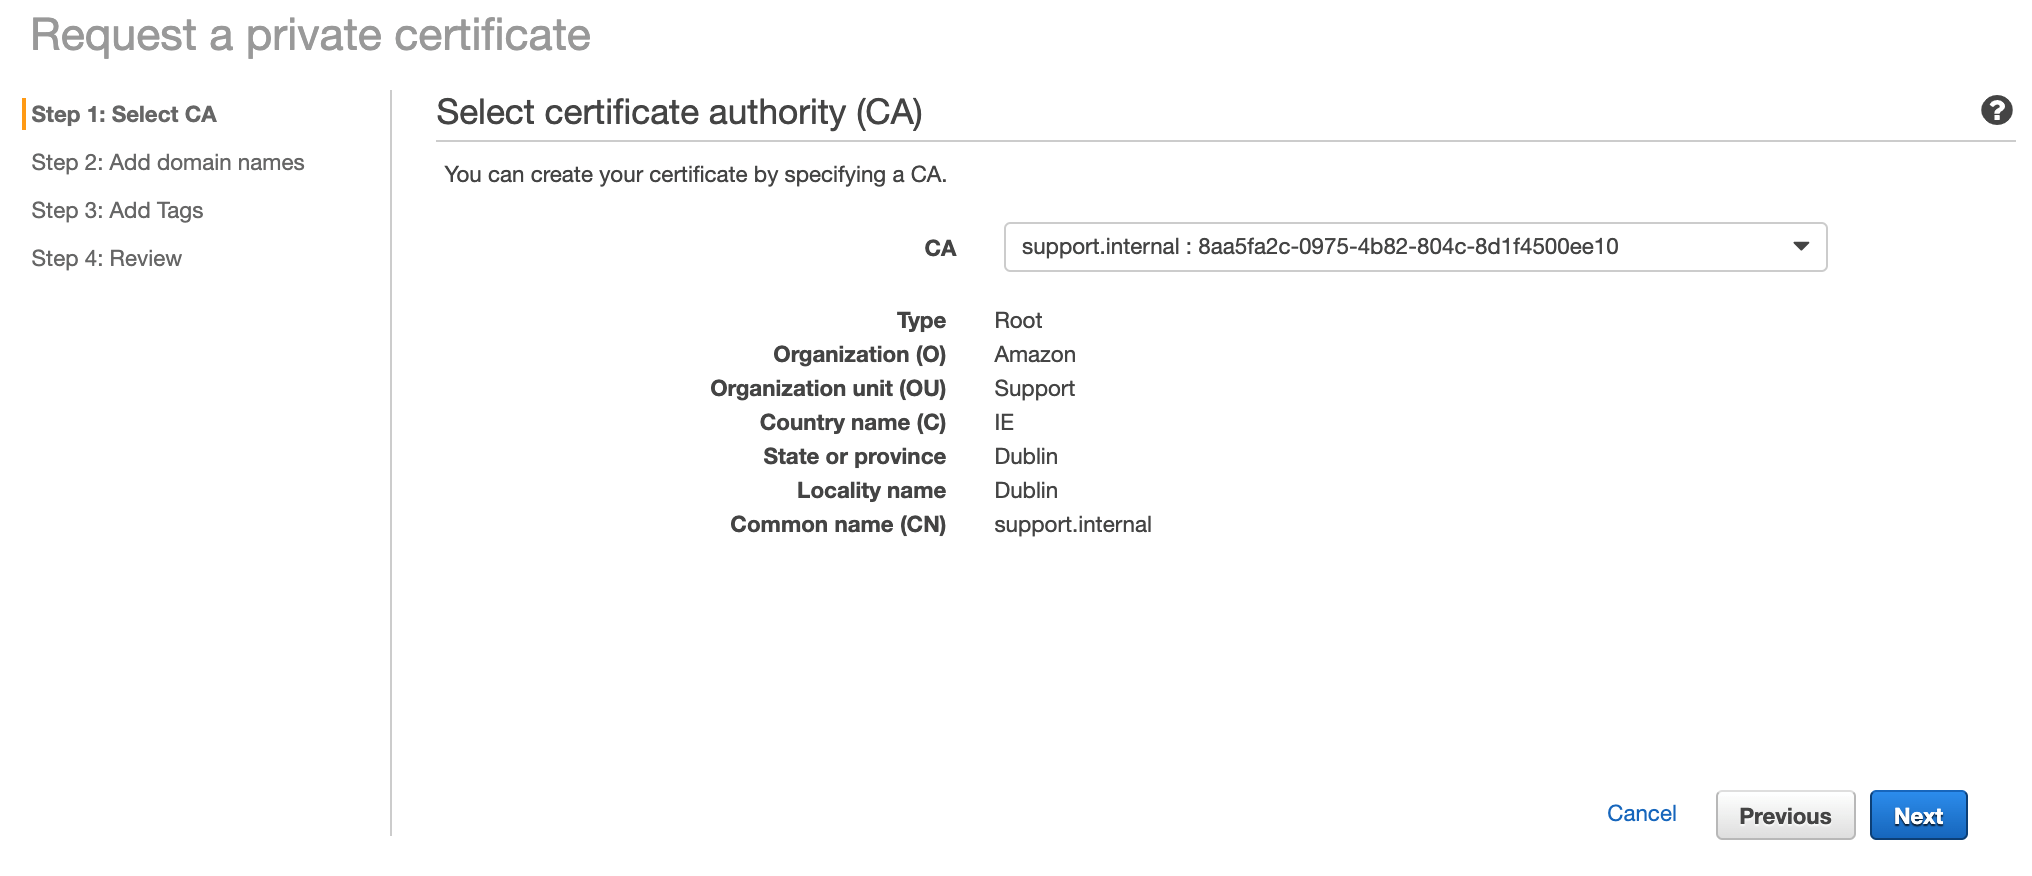 Figure 4: Select certificate authority (CA) page